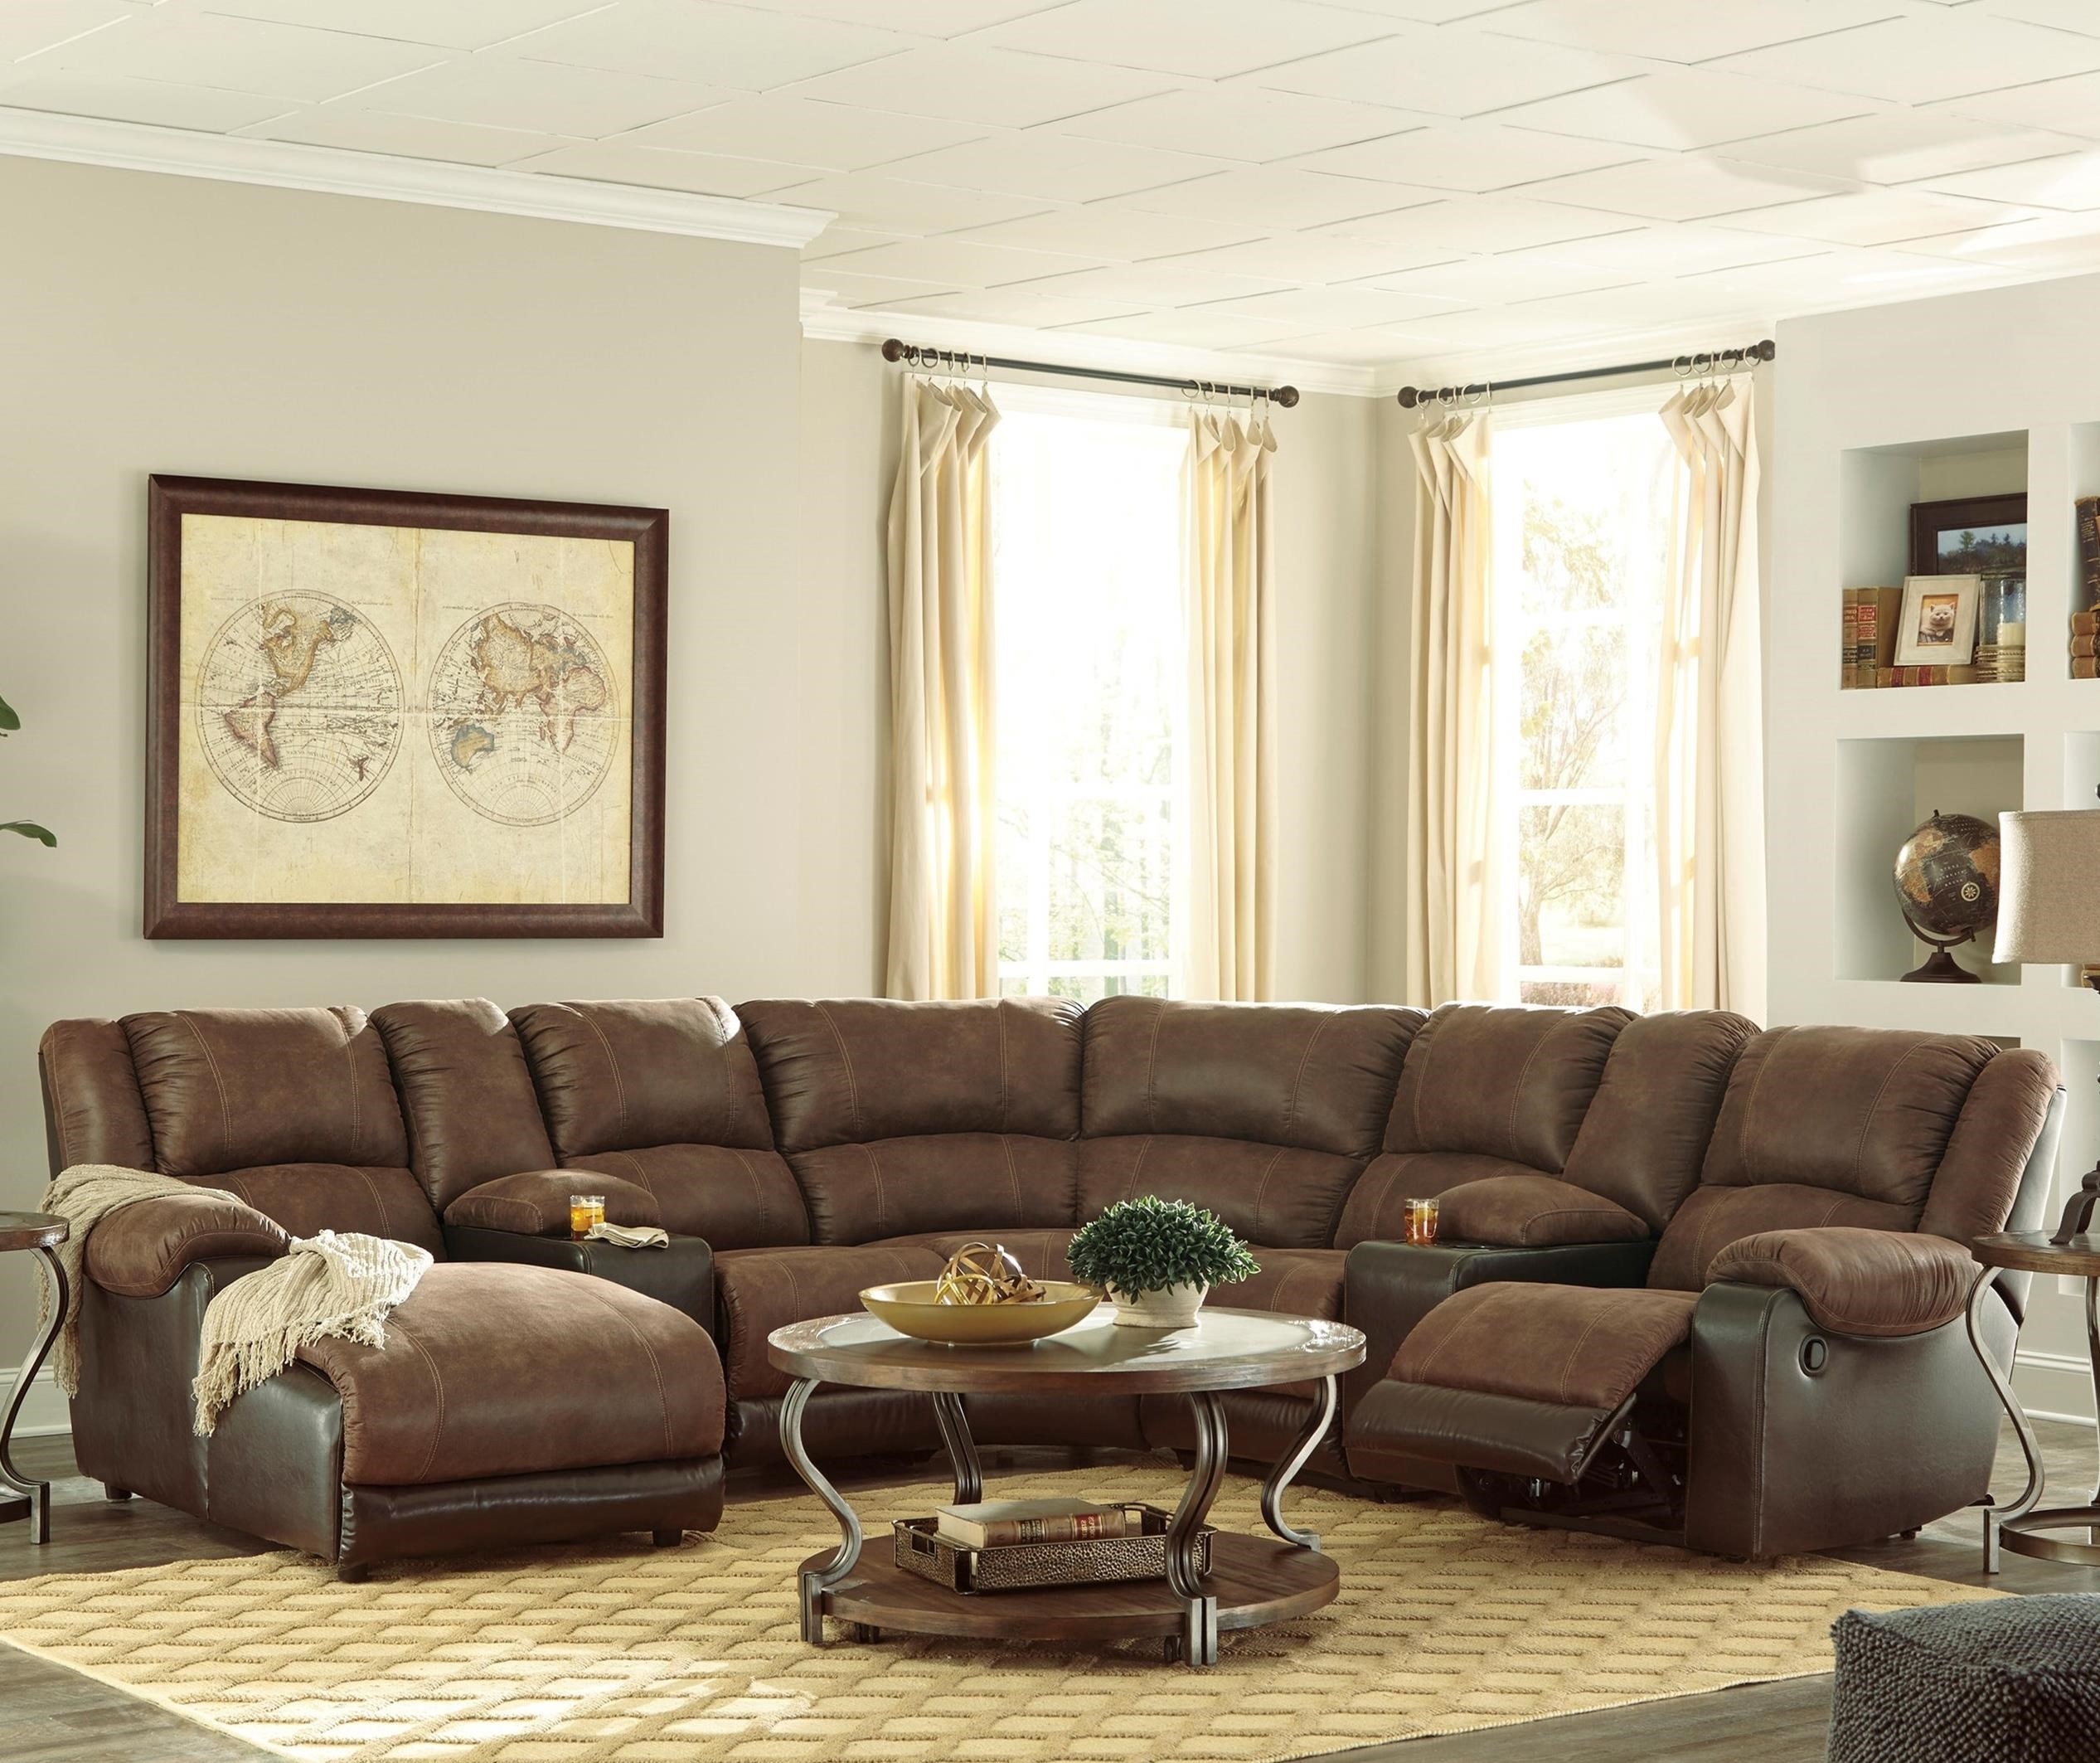 Signature Design by Ashley Nantahala Faux Leather Reclining Sectional with 2 Consoles u0026 Chaise  sc 1 st  Value City Furniture : sectional with reclining chaise - Sectionals, Sofas & Couches